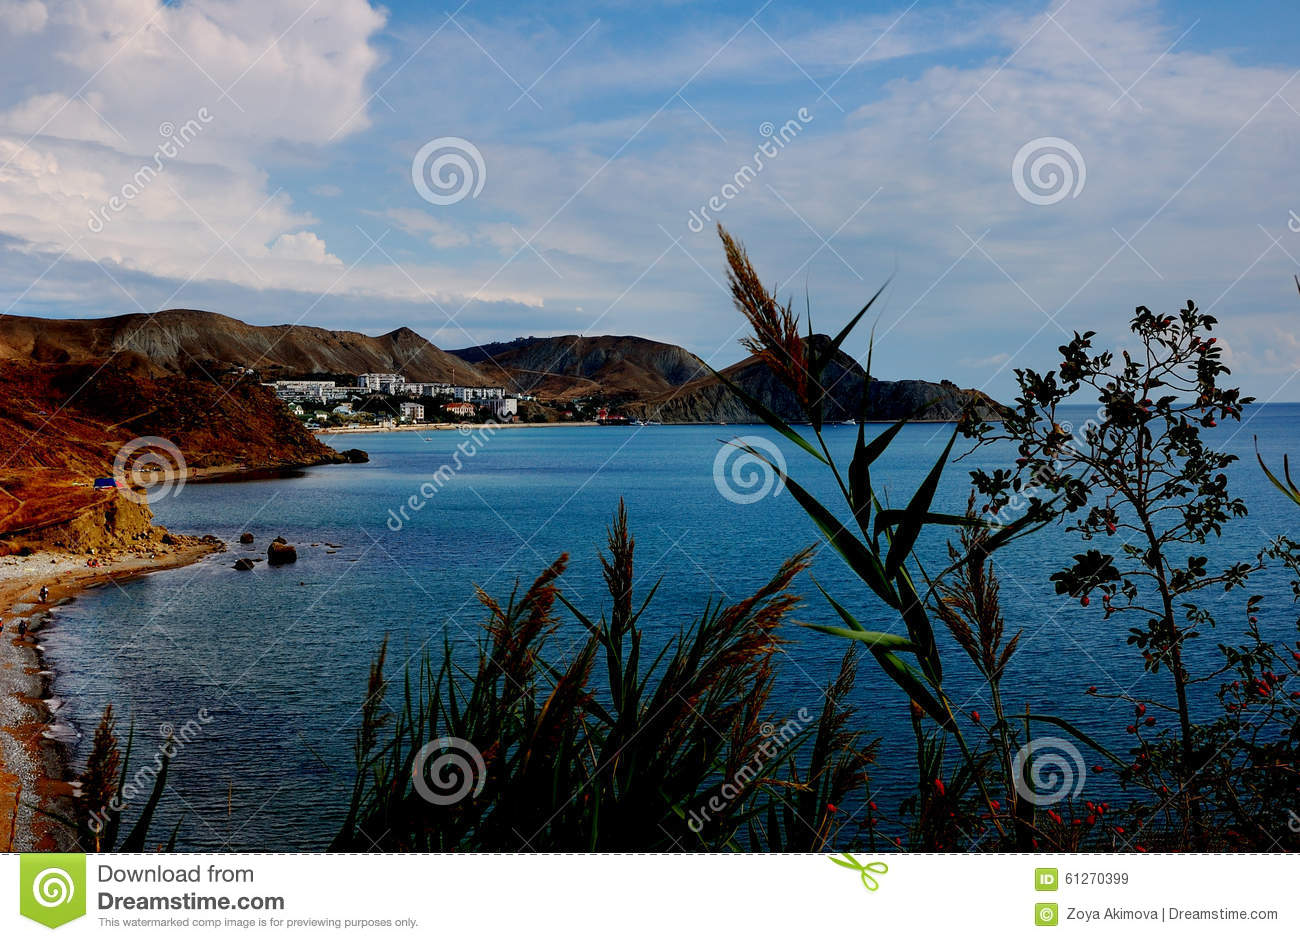 Silent Cove in Koktebel: description, how to get, reviews 32